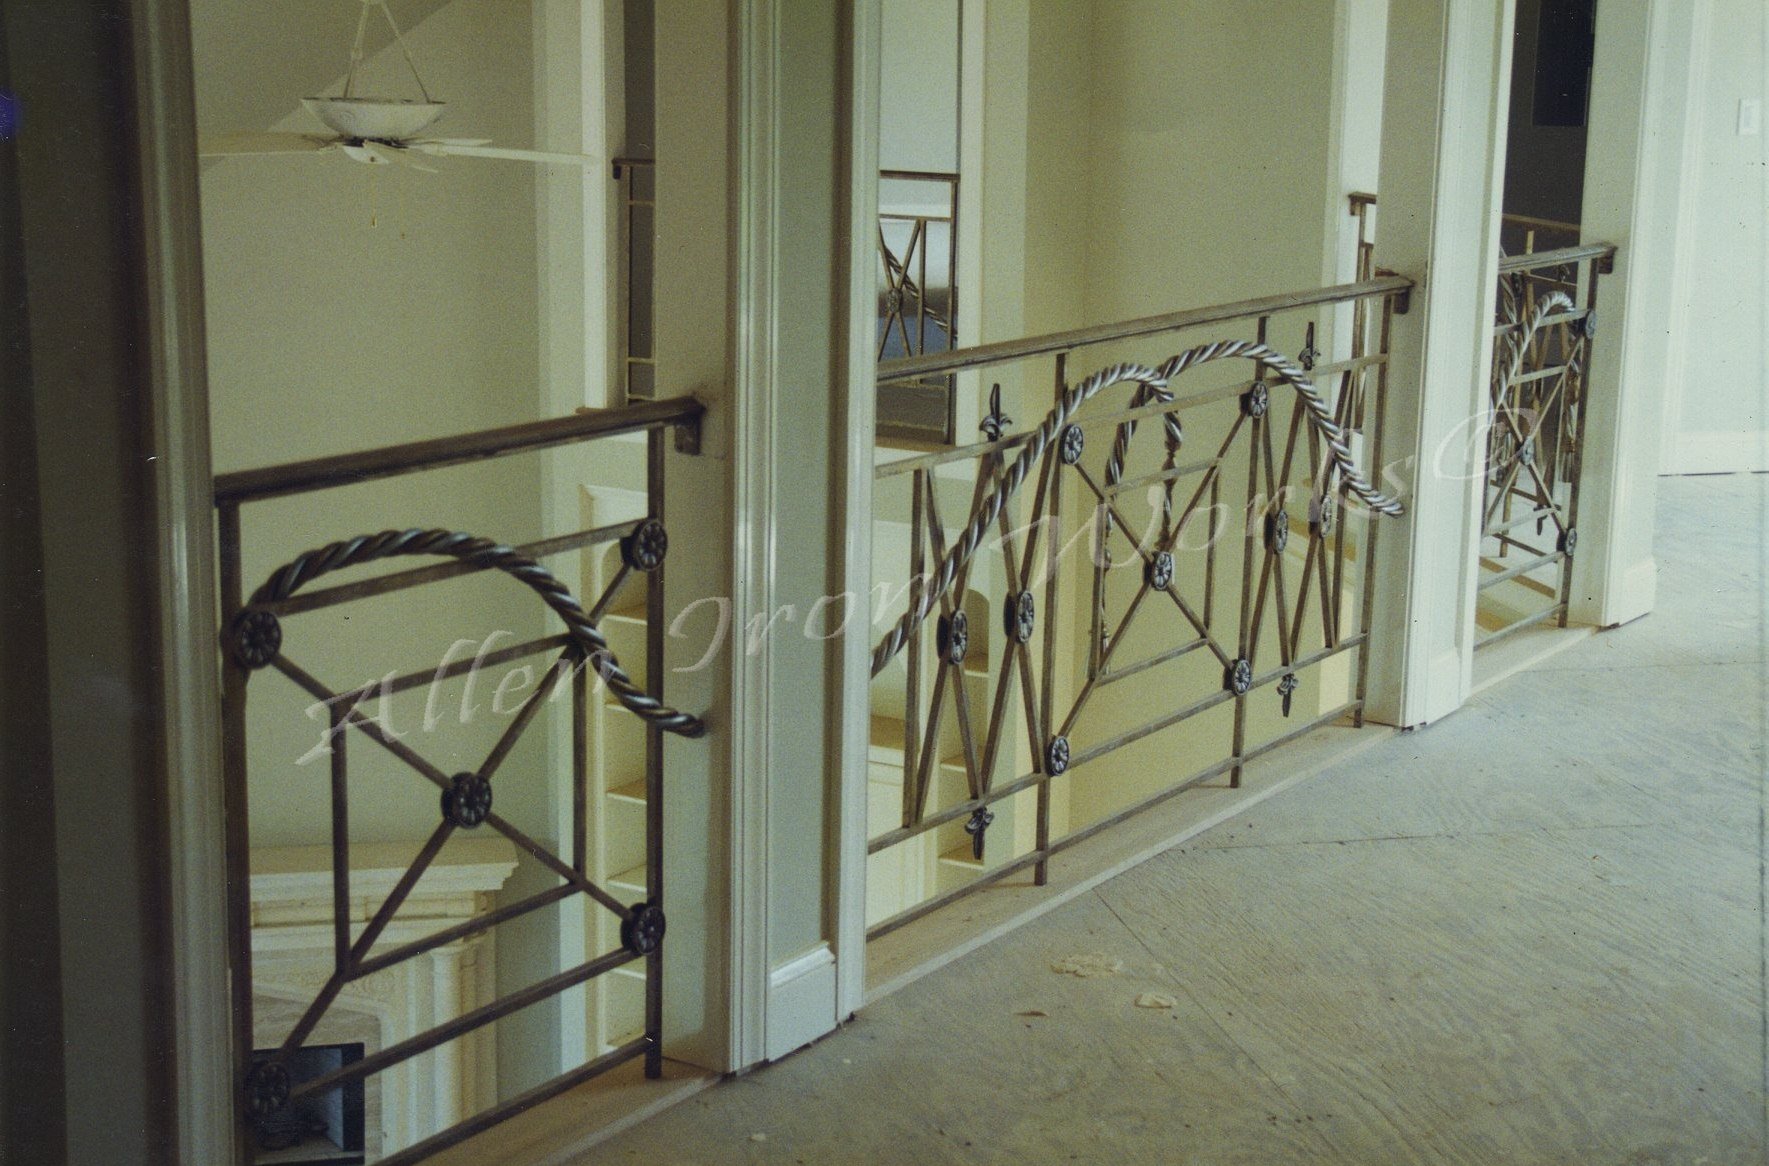 contemporary-interior-iron-railing-bimringham-with-hand-crafted-rope-and-x-design